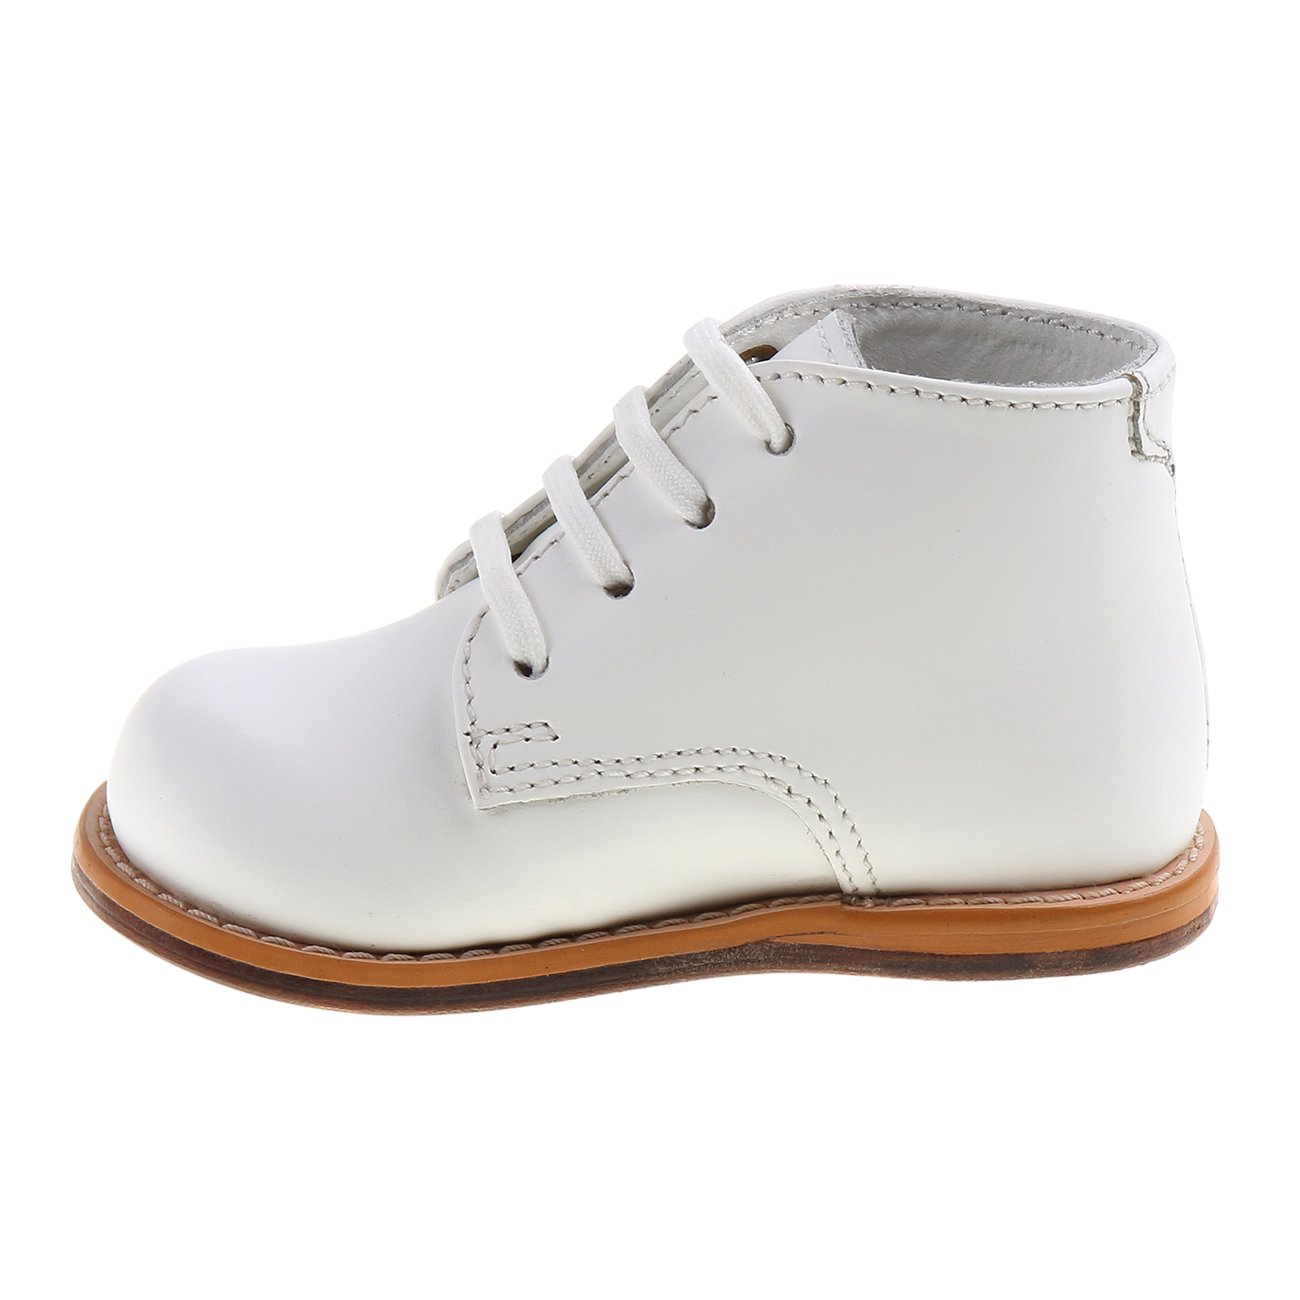 White, 3 Wide Josmo 2-8 Wide Walking Shoes